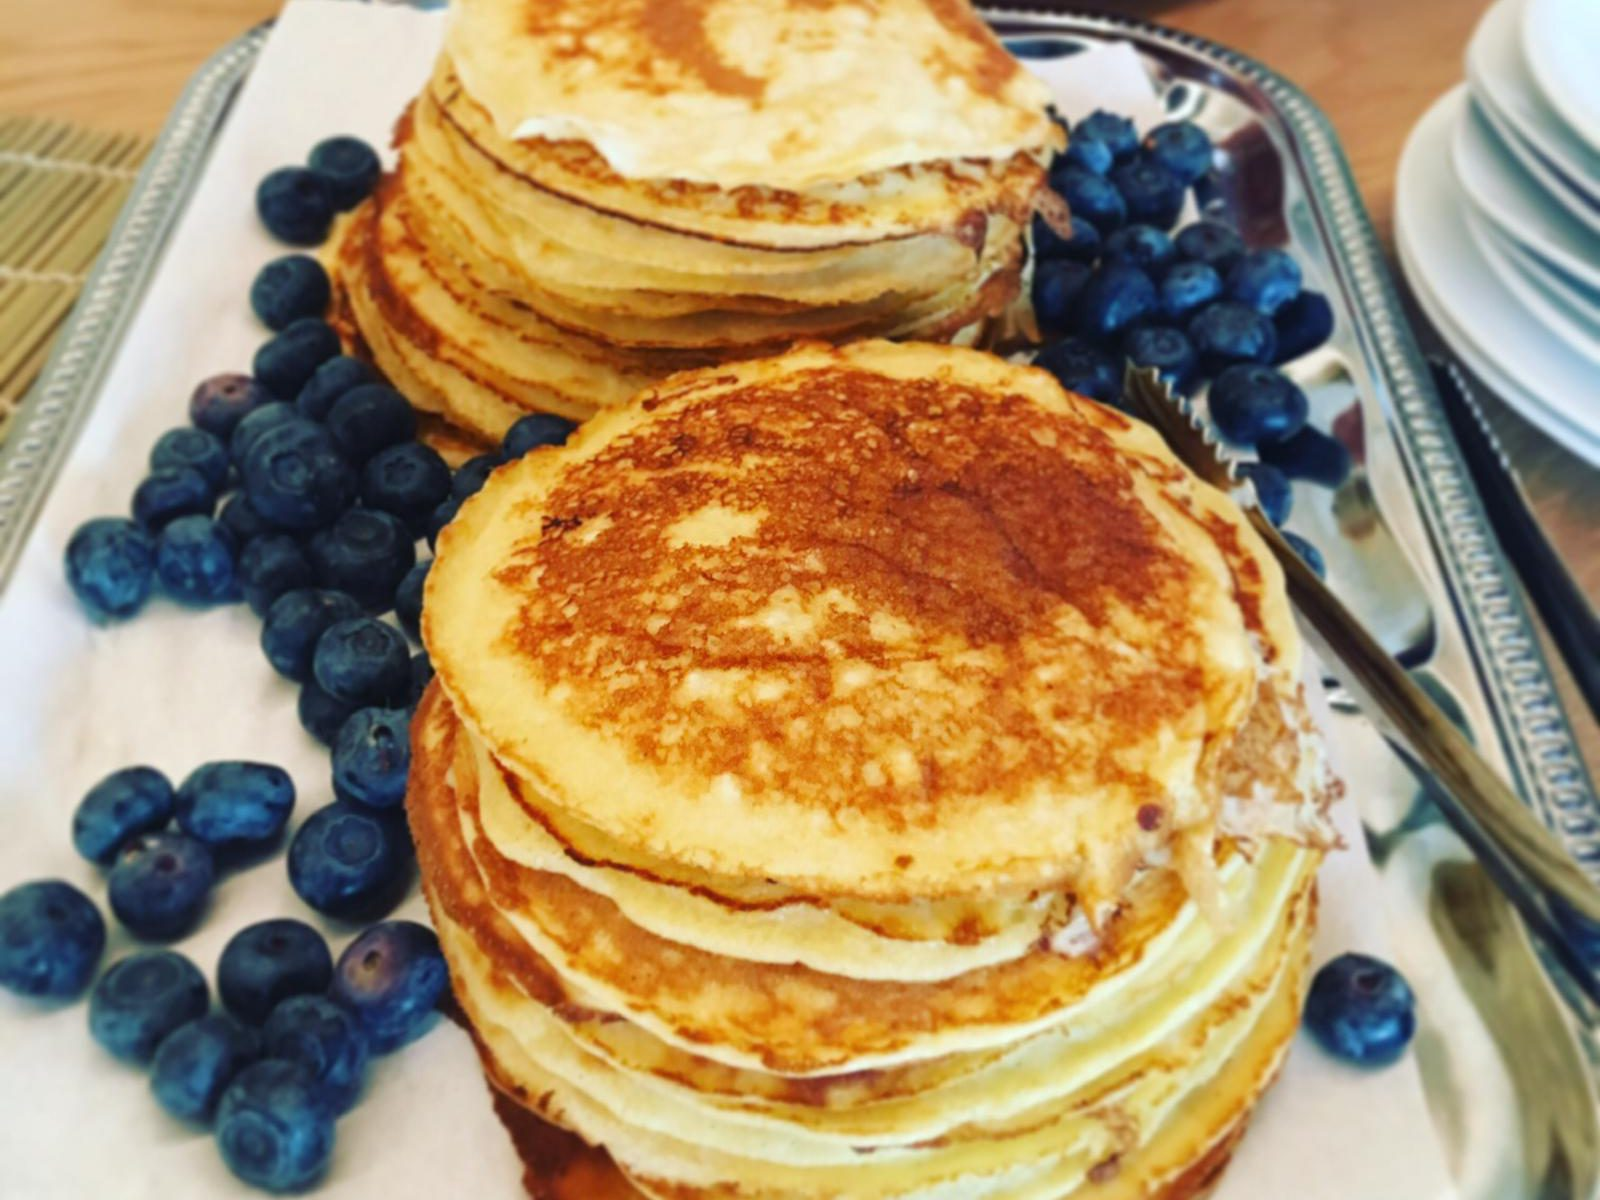 Pancakes from Suppenmacher